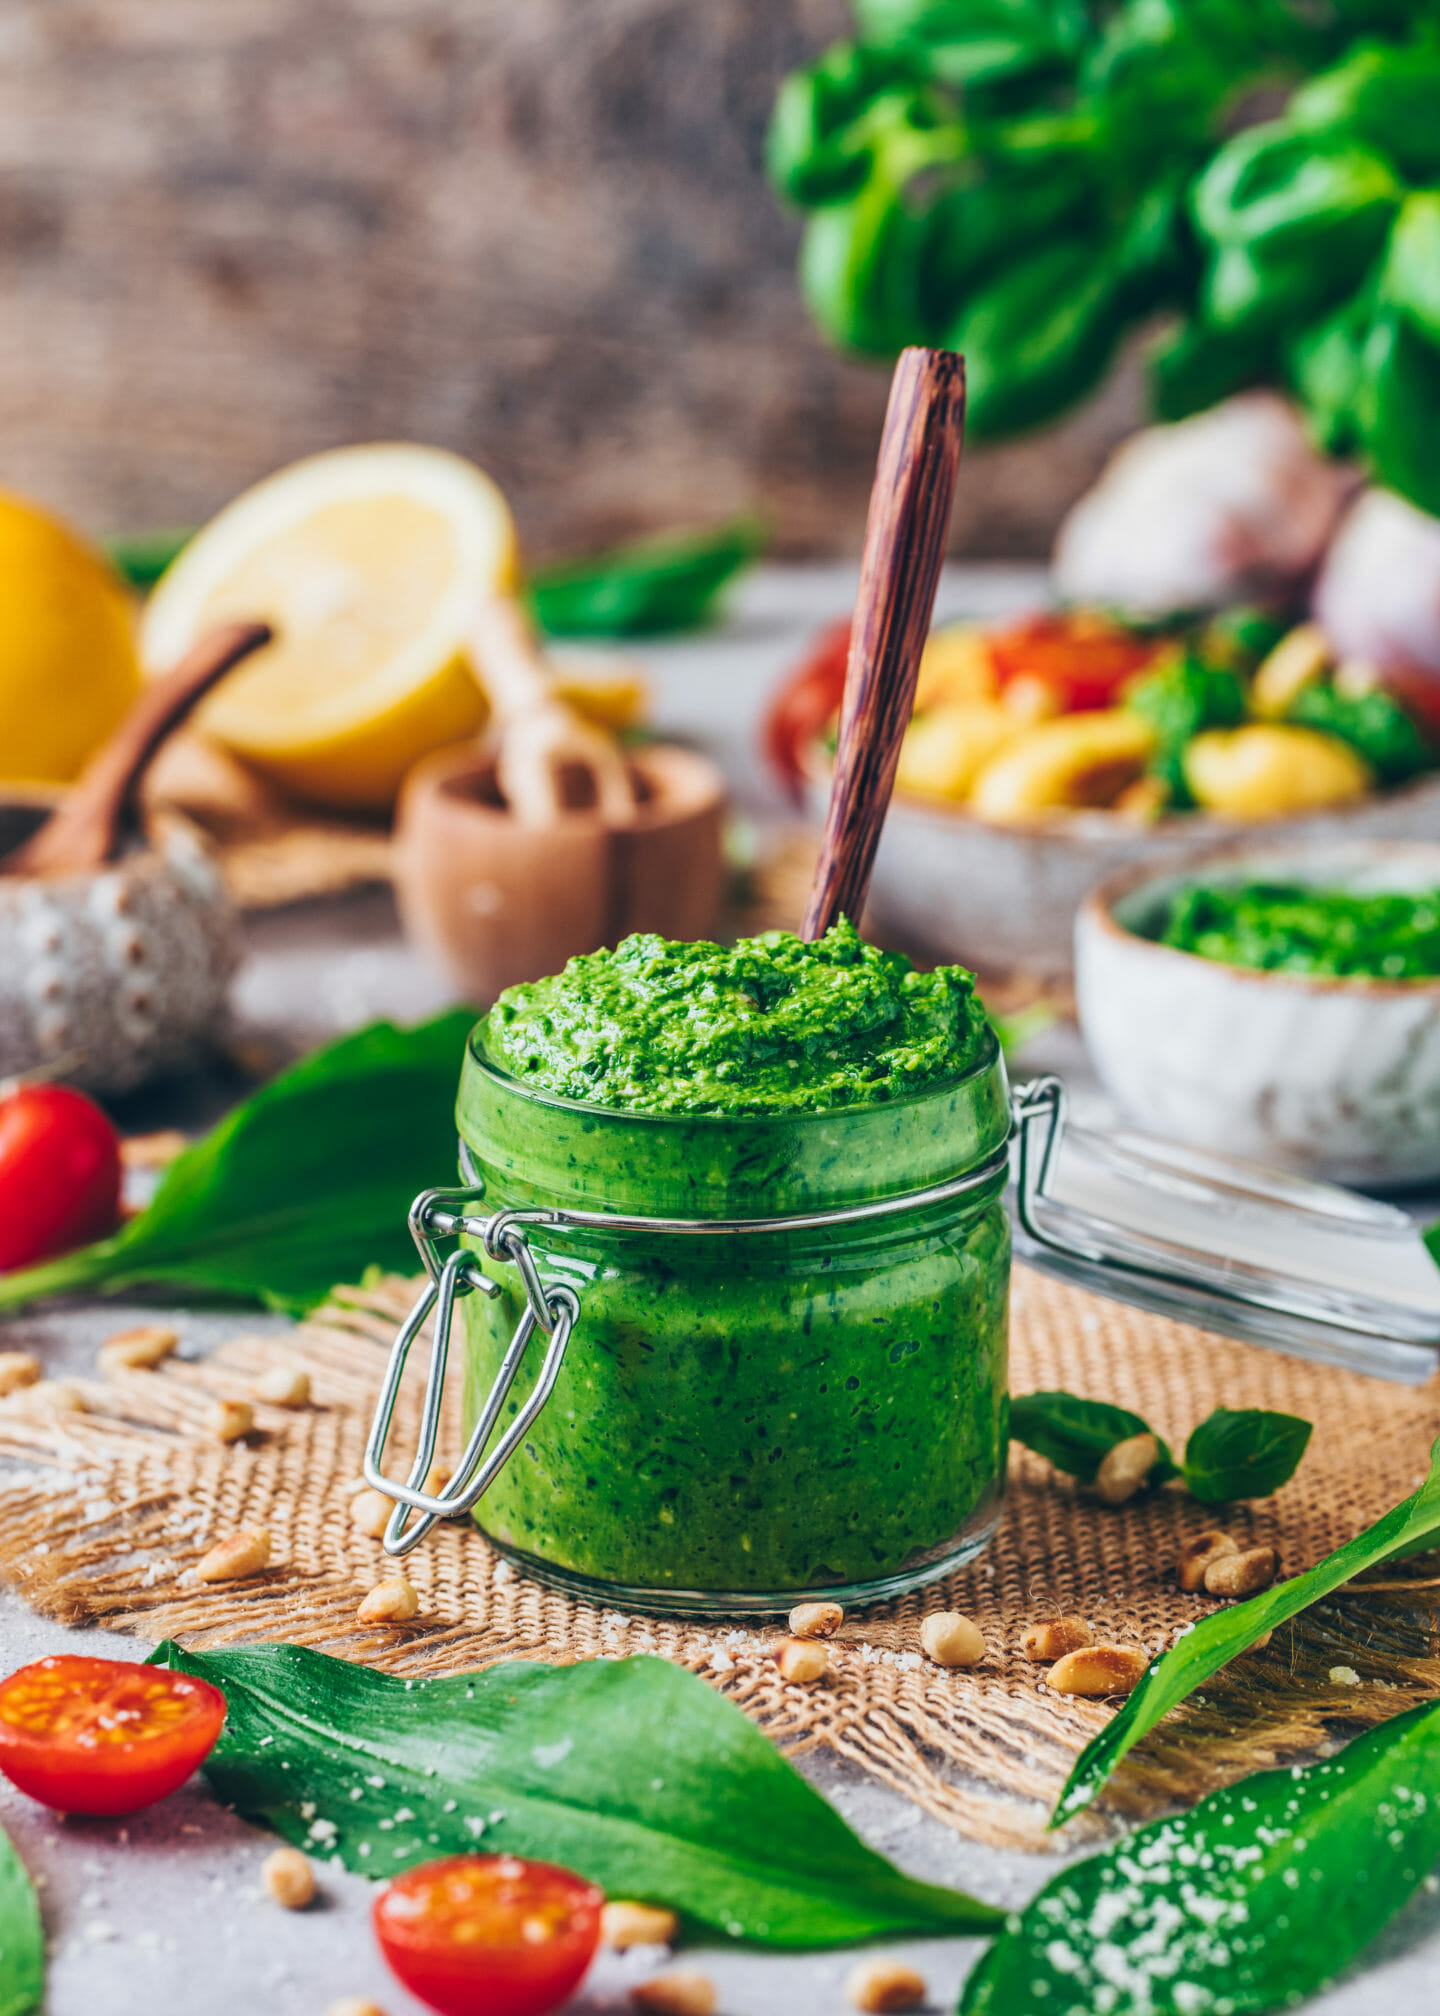 vegan wild garlic pesto in a jar (food photography)